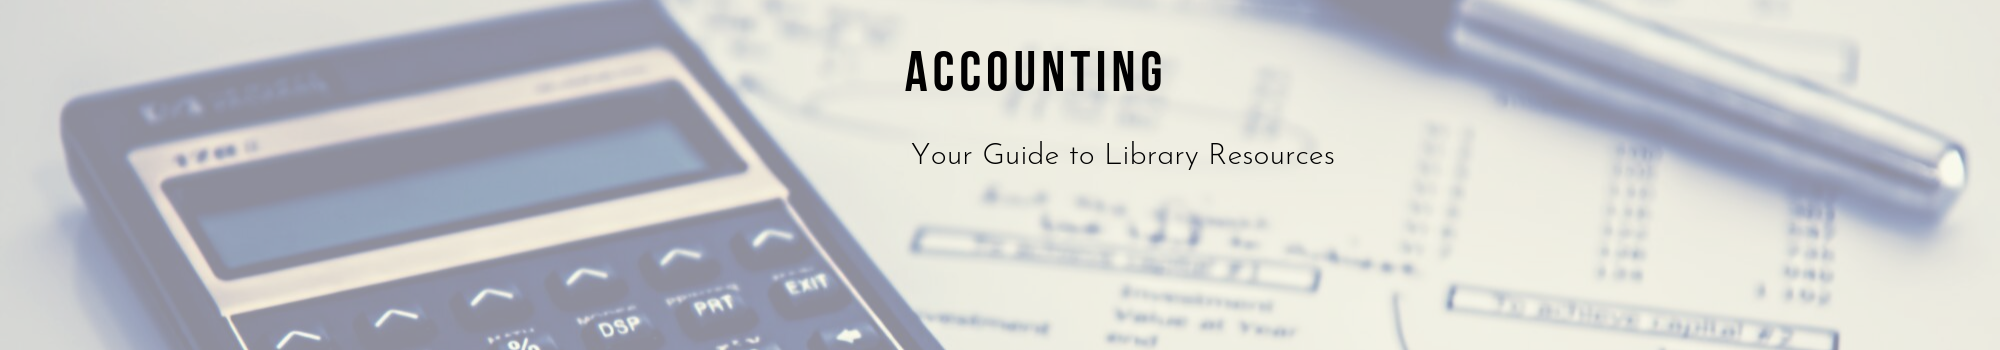 Accounting LibGuide